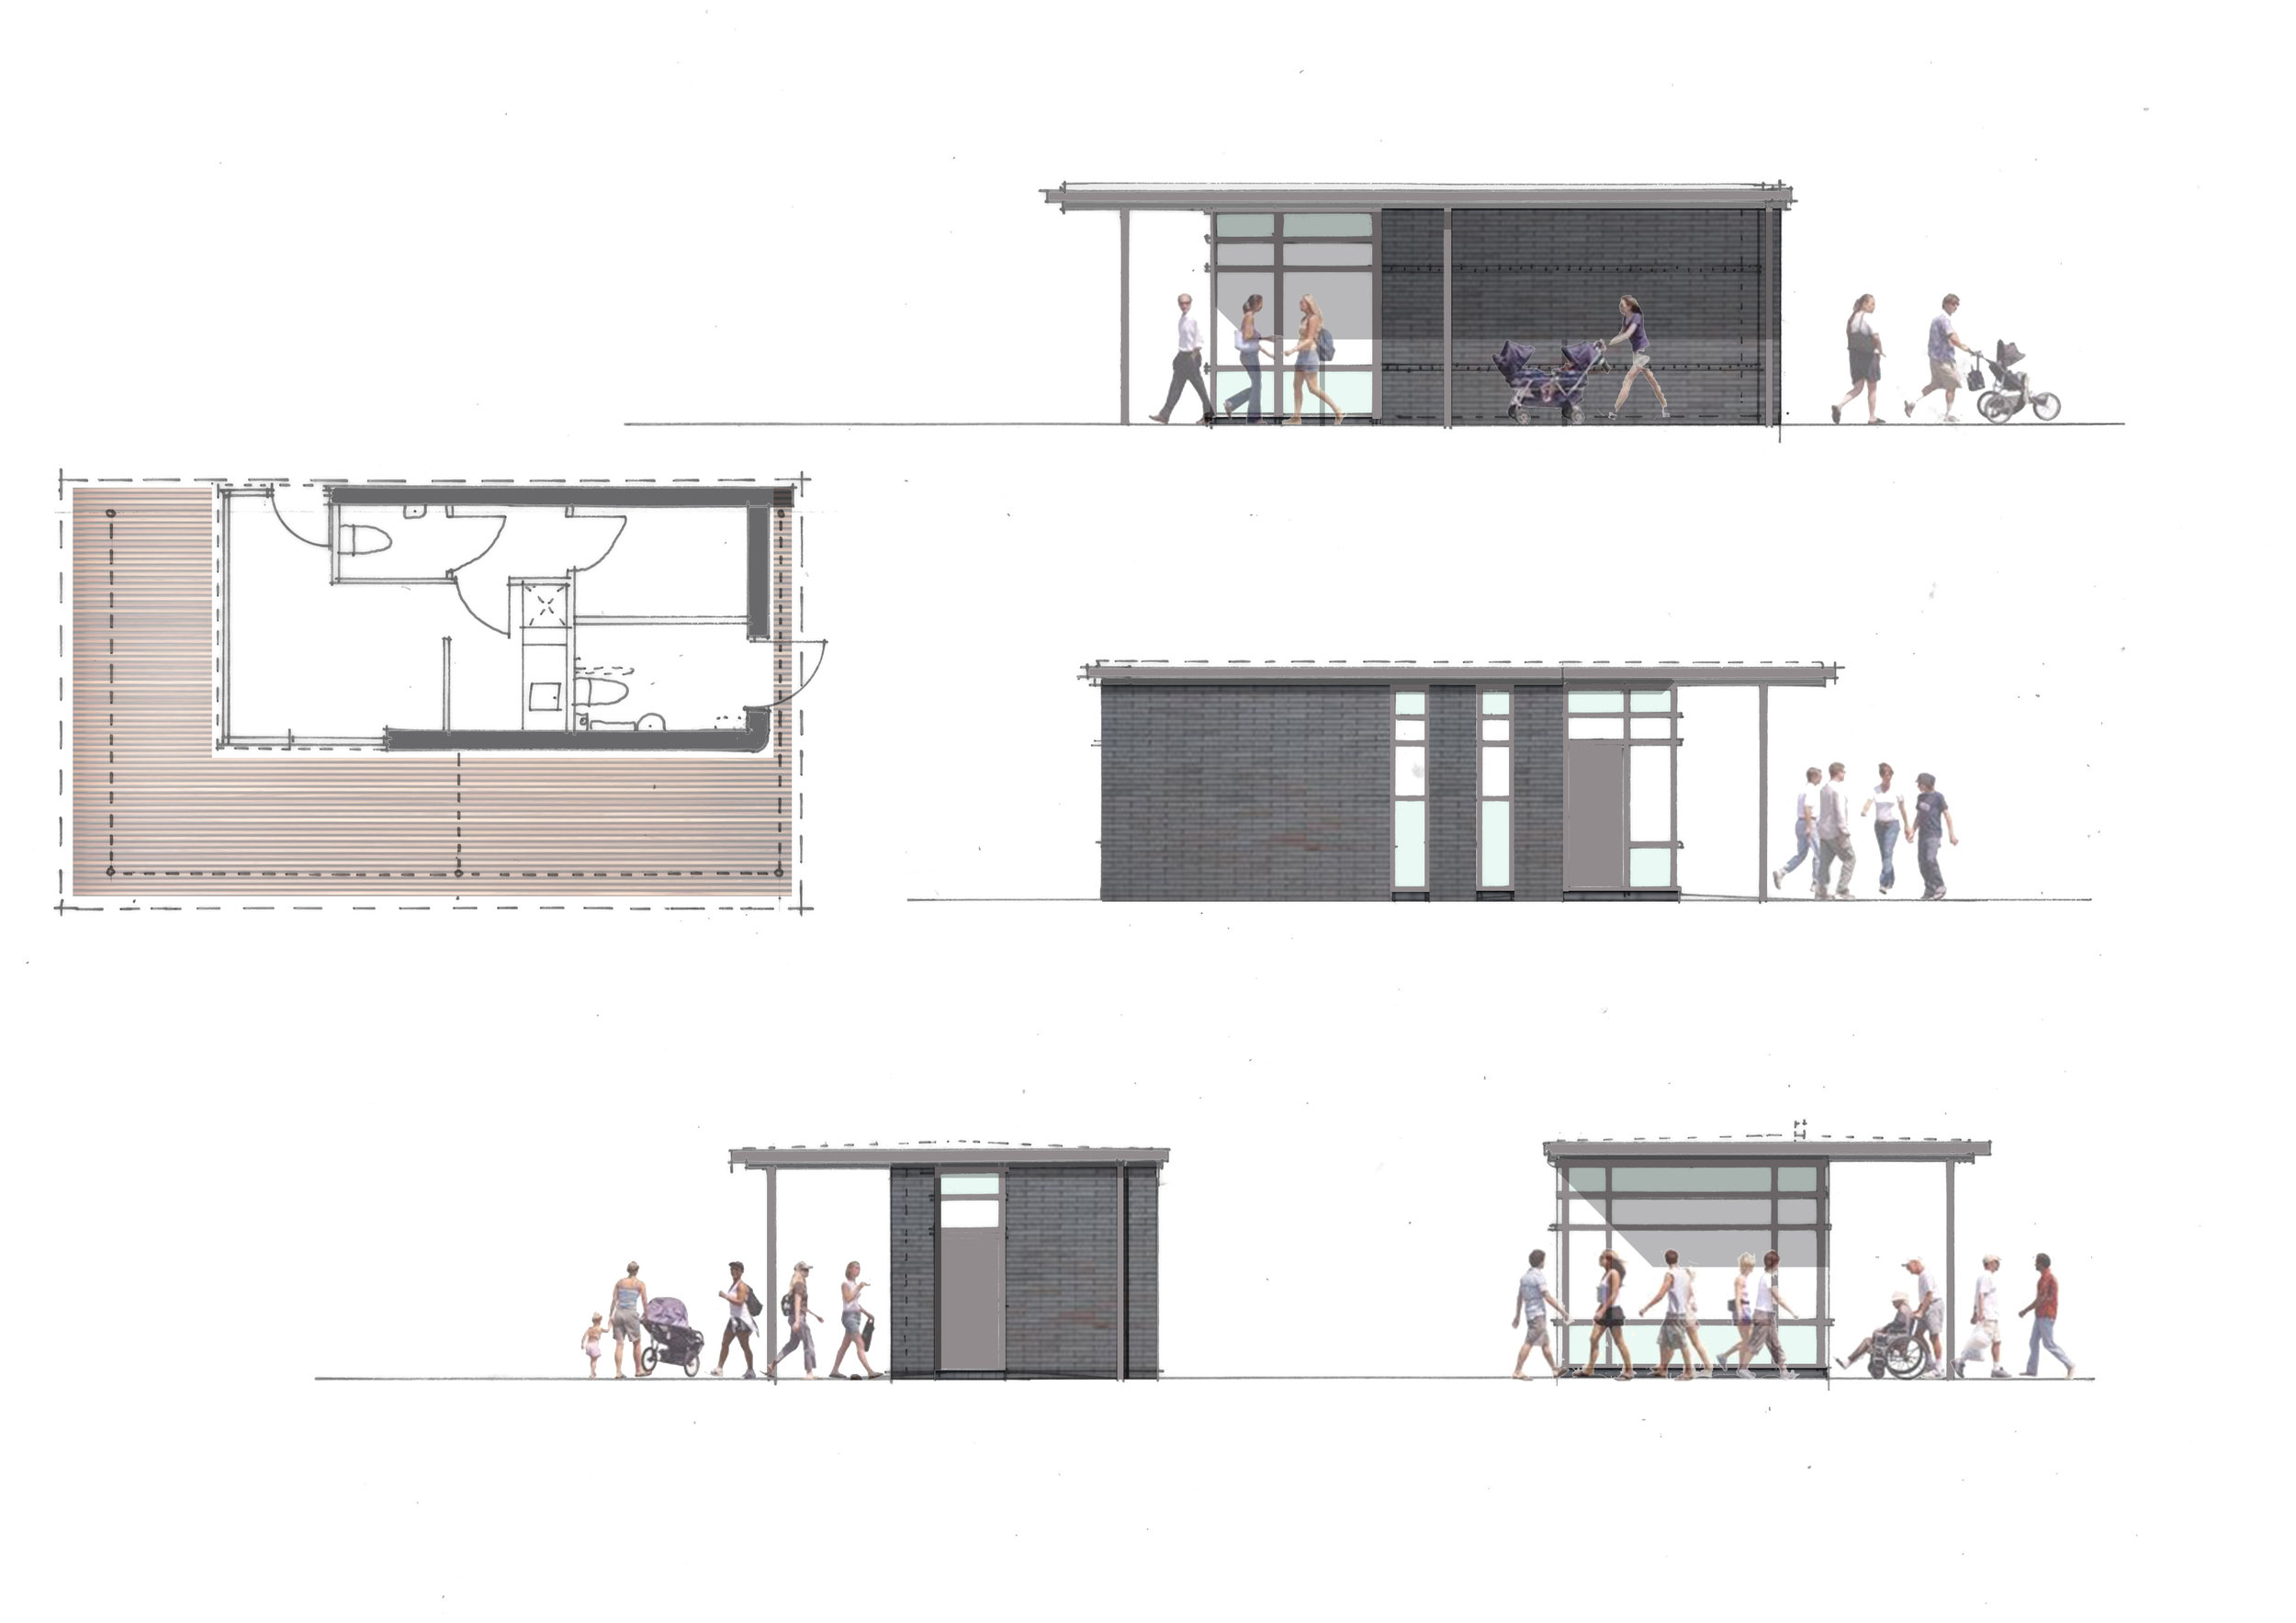 Initial concept proposals for proposed ticket office